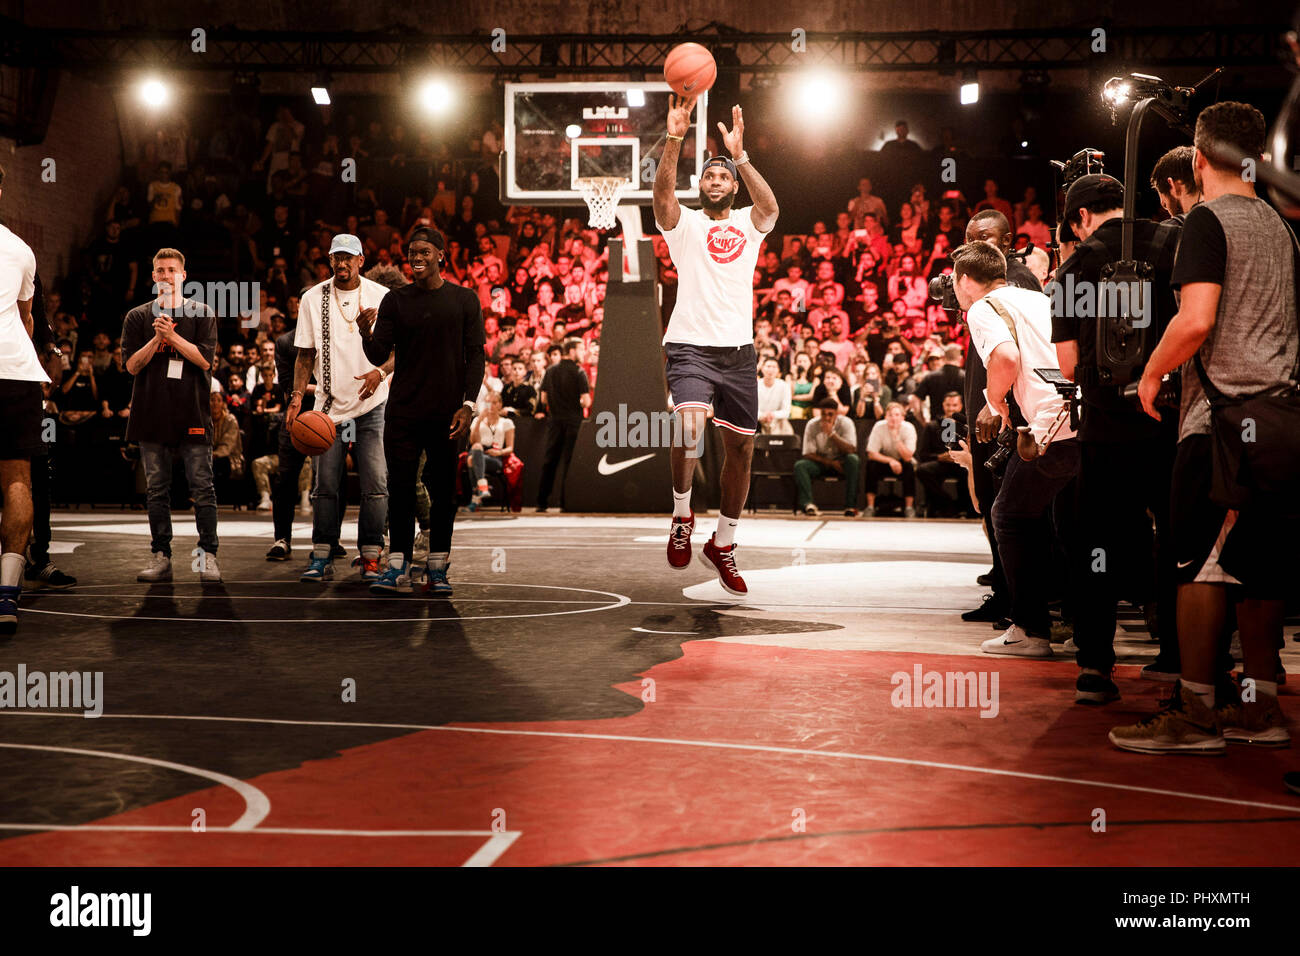 Berlin, Germany. 02nd Sep, 2018. 09/02/2018, Berlin: LeBron James, NBA professional of the Los Angeles Lakers, throws during the promotional tour 'More than an athlete'. The two-time Olympic champion has won the North American professional league NBA three times in his career and is regarded as the best basketball player of his generation. Credit: Carsten Koall/dpa/Alamy Live News - Stock Image